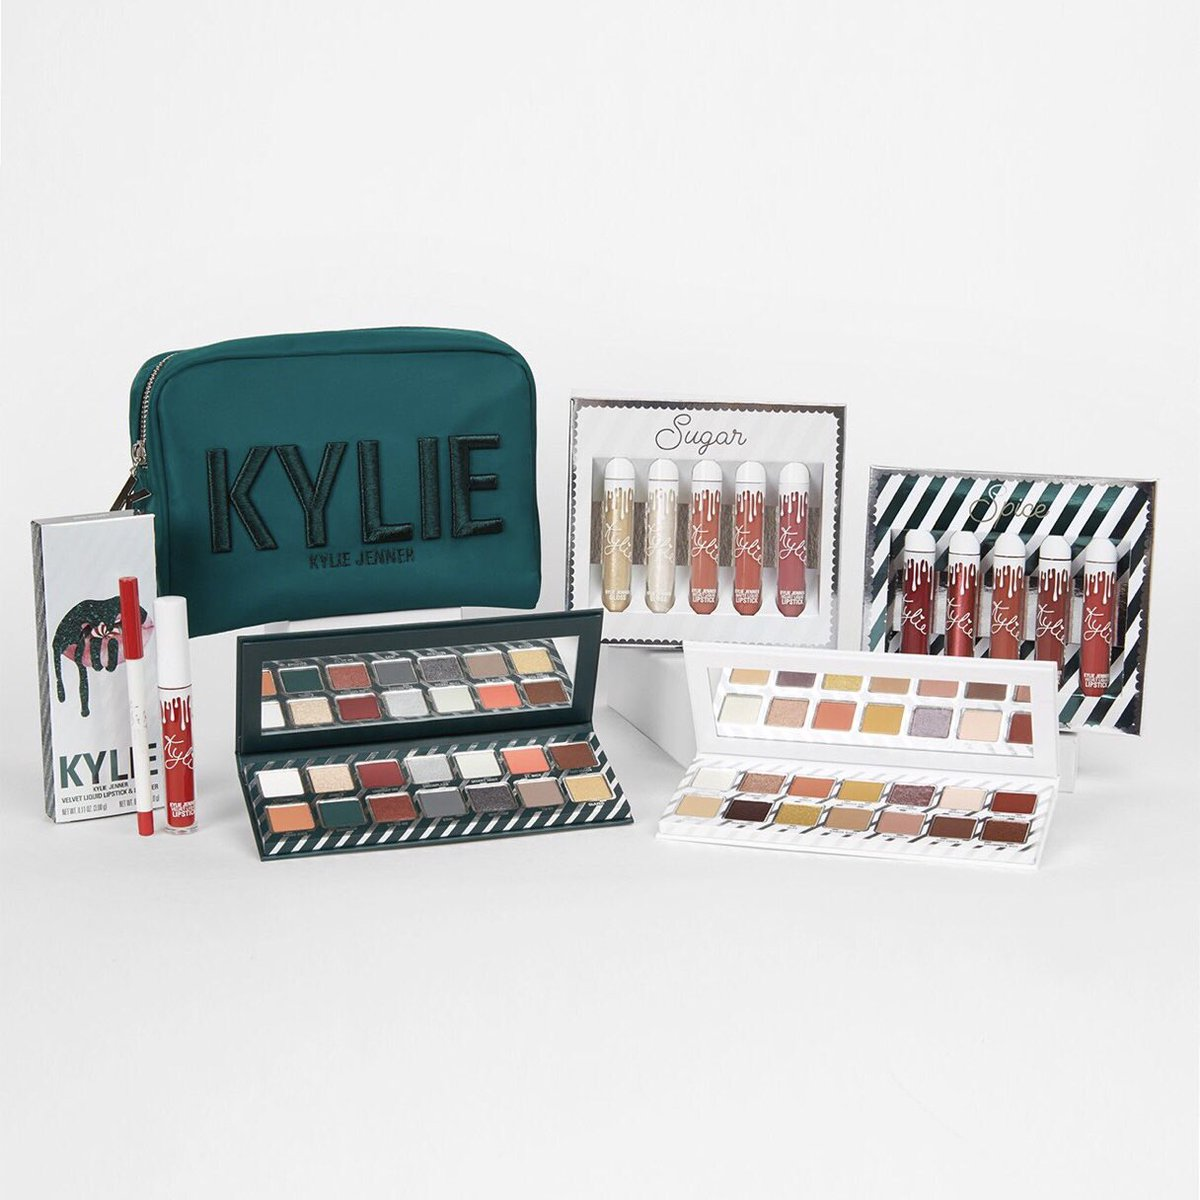 kylie cosmetics on twitter we are live with the holiday collection free worldwide shipping httpstcorkt2b8jjl5 holiday2017